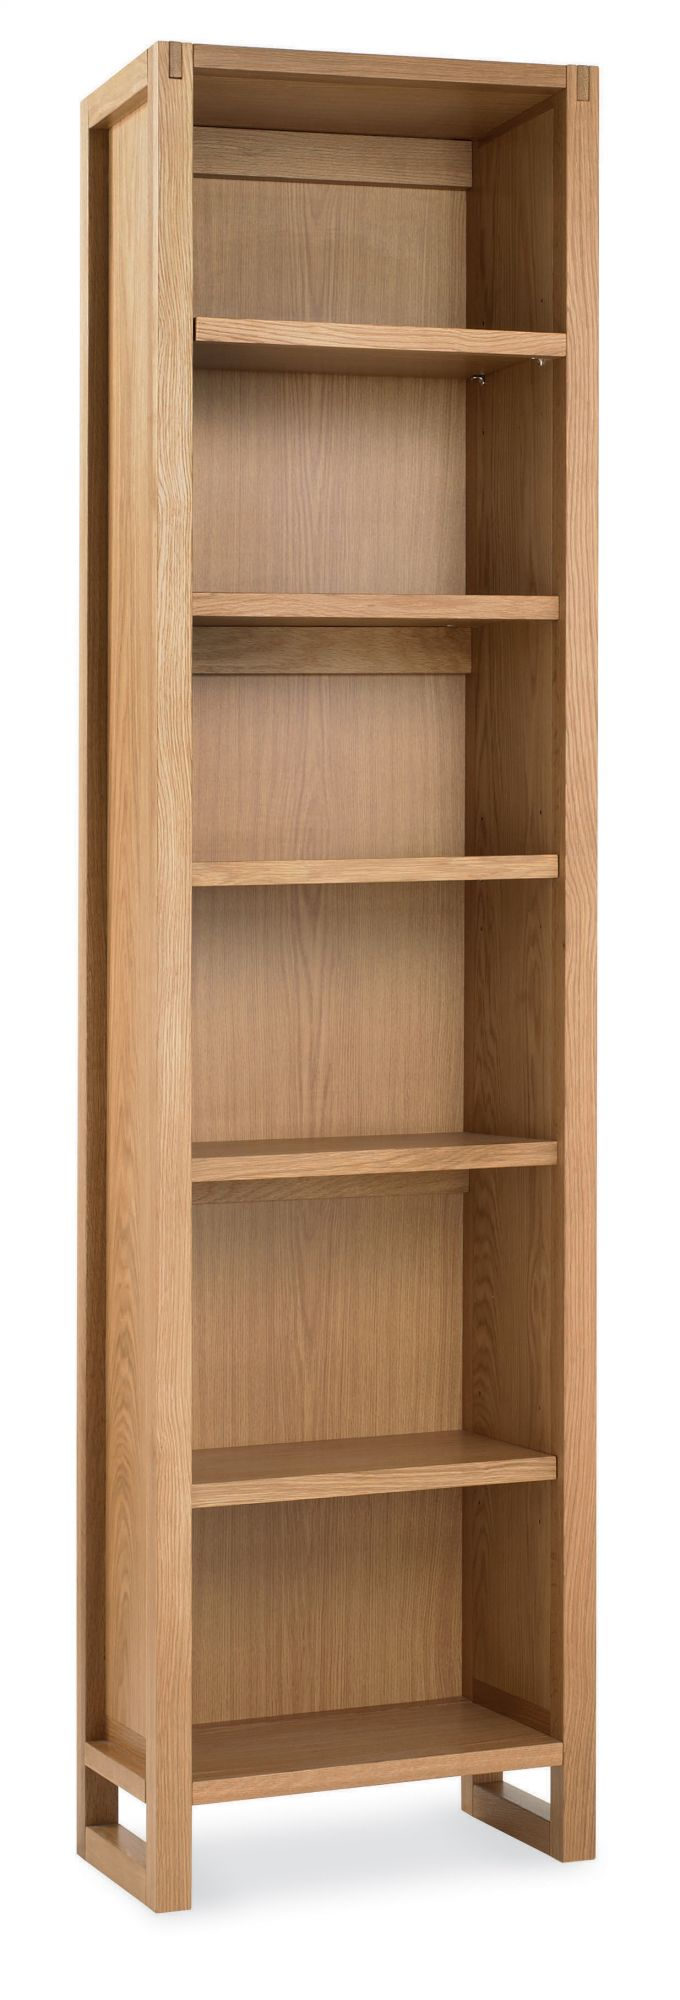 Photo of Bentley designs studio oak single bookcase